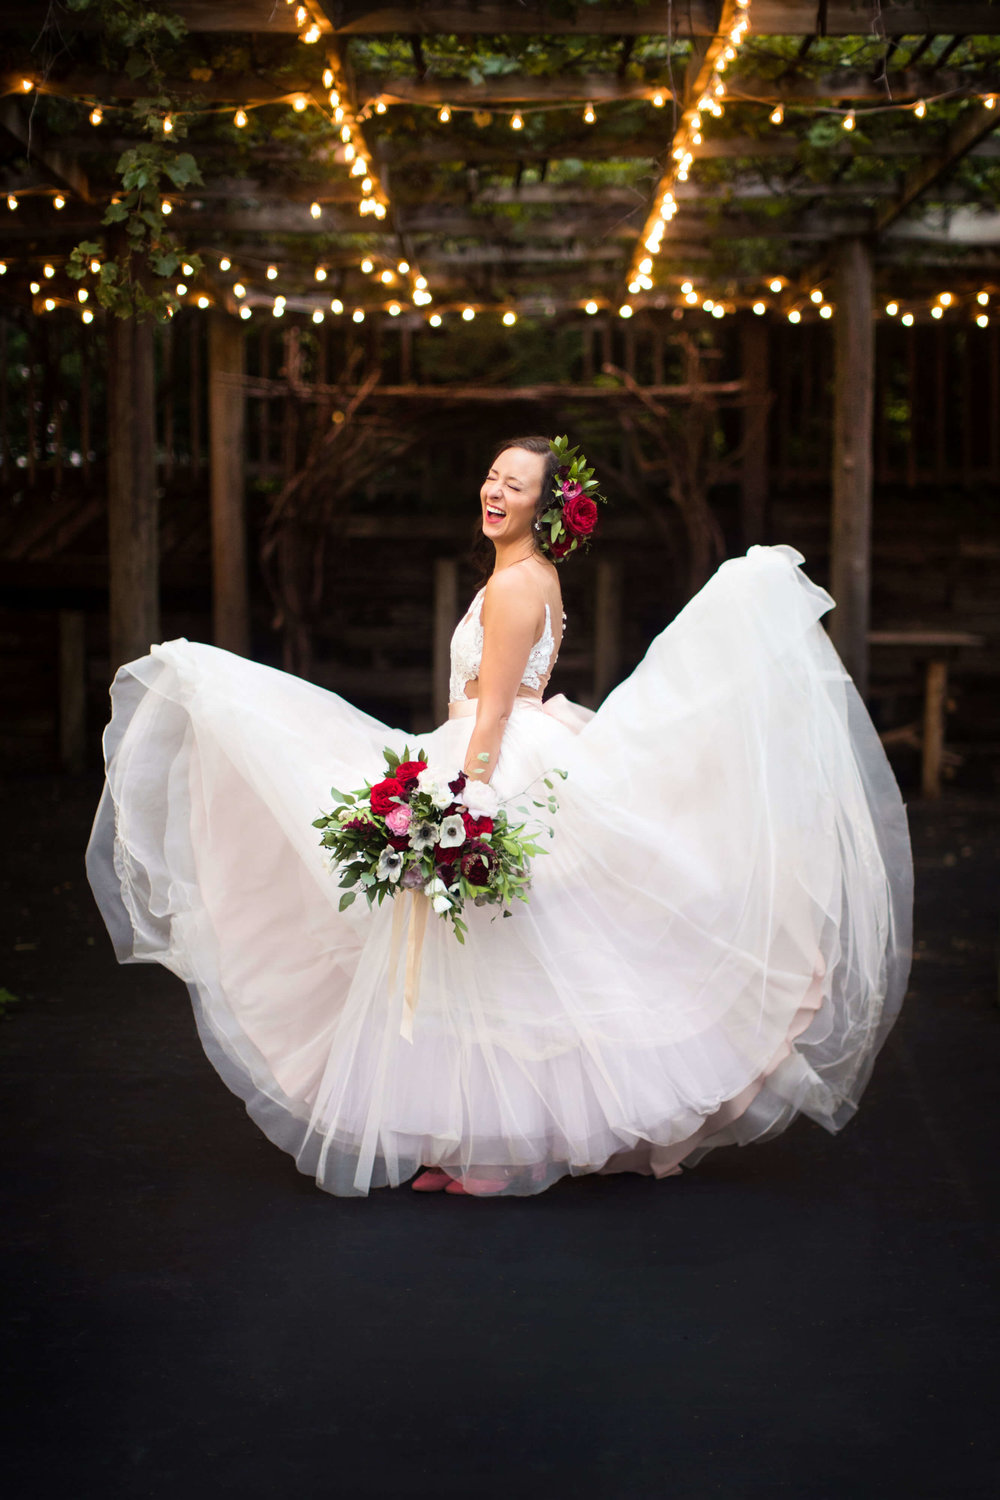 brides dress flipped up! anemone bouquet with bride red blooms and scabiosa flowers | Minnesota wedding photographer Studio KH wedding dress details | wedding blog | Sixpence Events 70 Ways to Photograph Your Wedding Dress.jpg